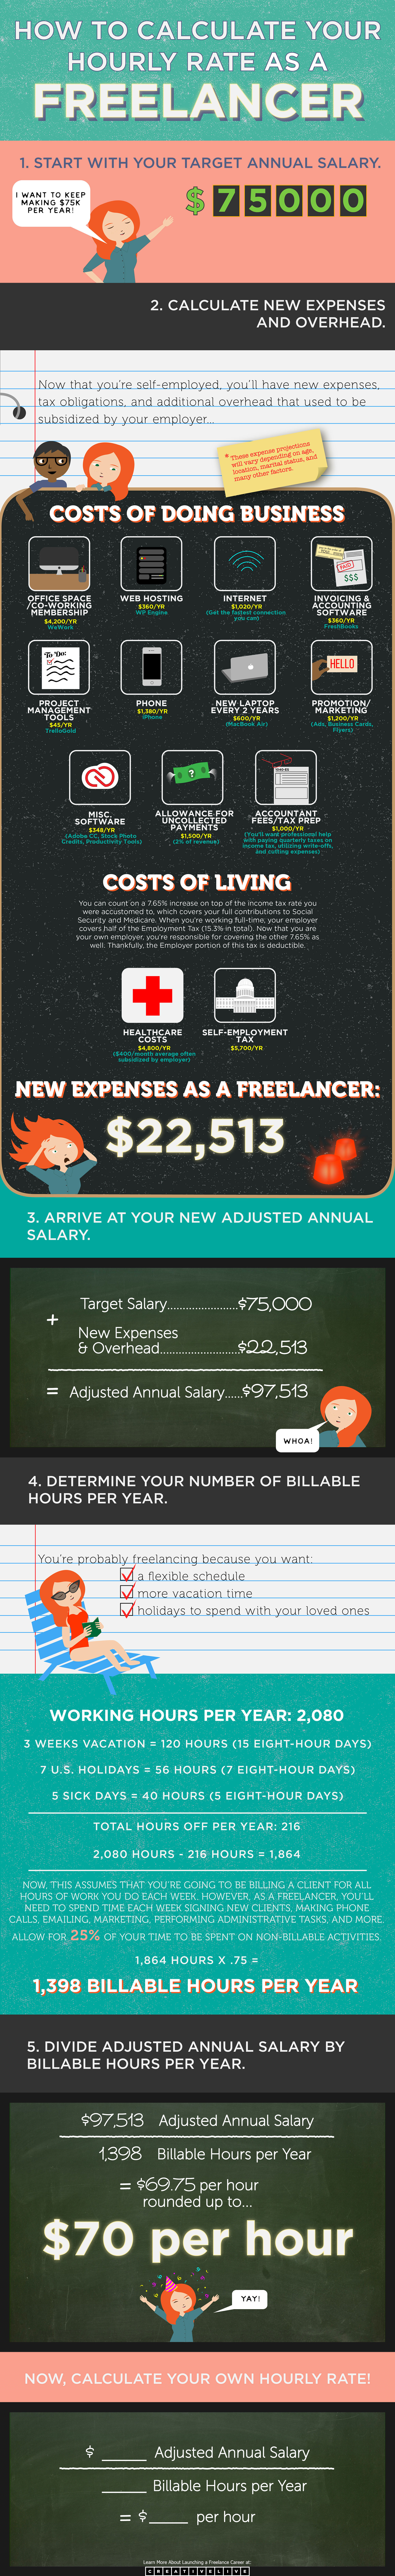 How To Calculate Your Freelance Hourly Rate Infographic By CreativeLive  Final